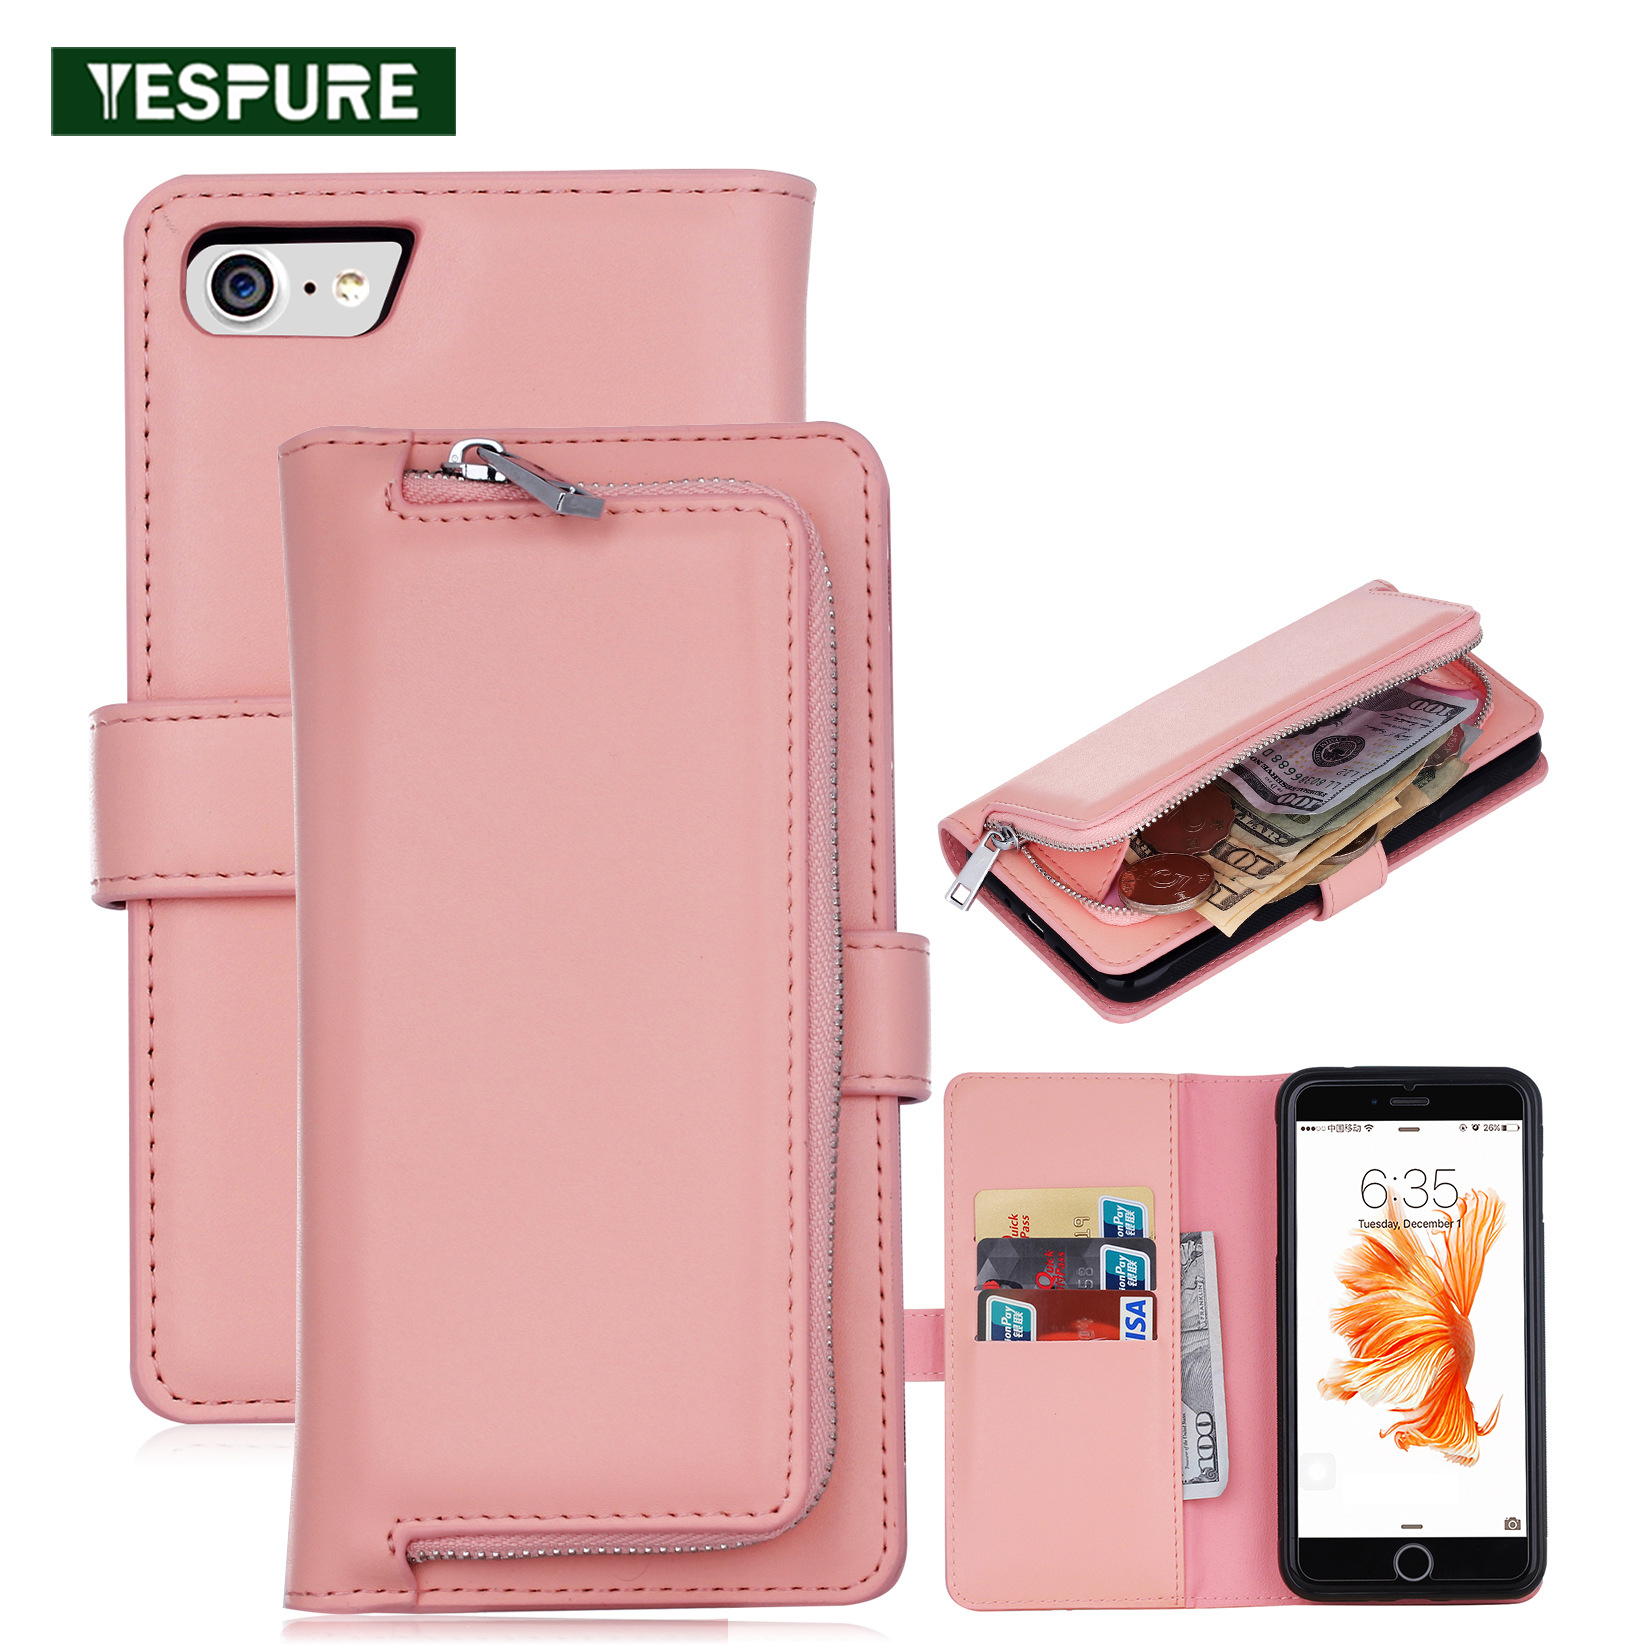 YESPURE Mobile Phone Covers Leather Phone Wallet Pink <font><b>Coque</b></font> for <font><b>Iphone</b></font> 6 <font><b>Fille</b></font> Carcasas Fundas for <font><b>Iphone</b></font> <font><b>6s</b></font> Mujer Anti Gravity image